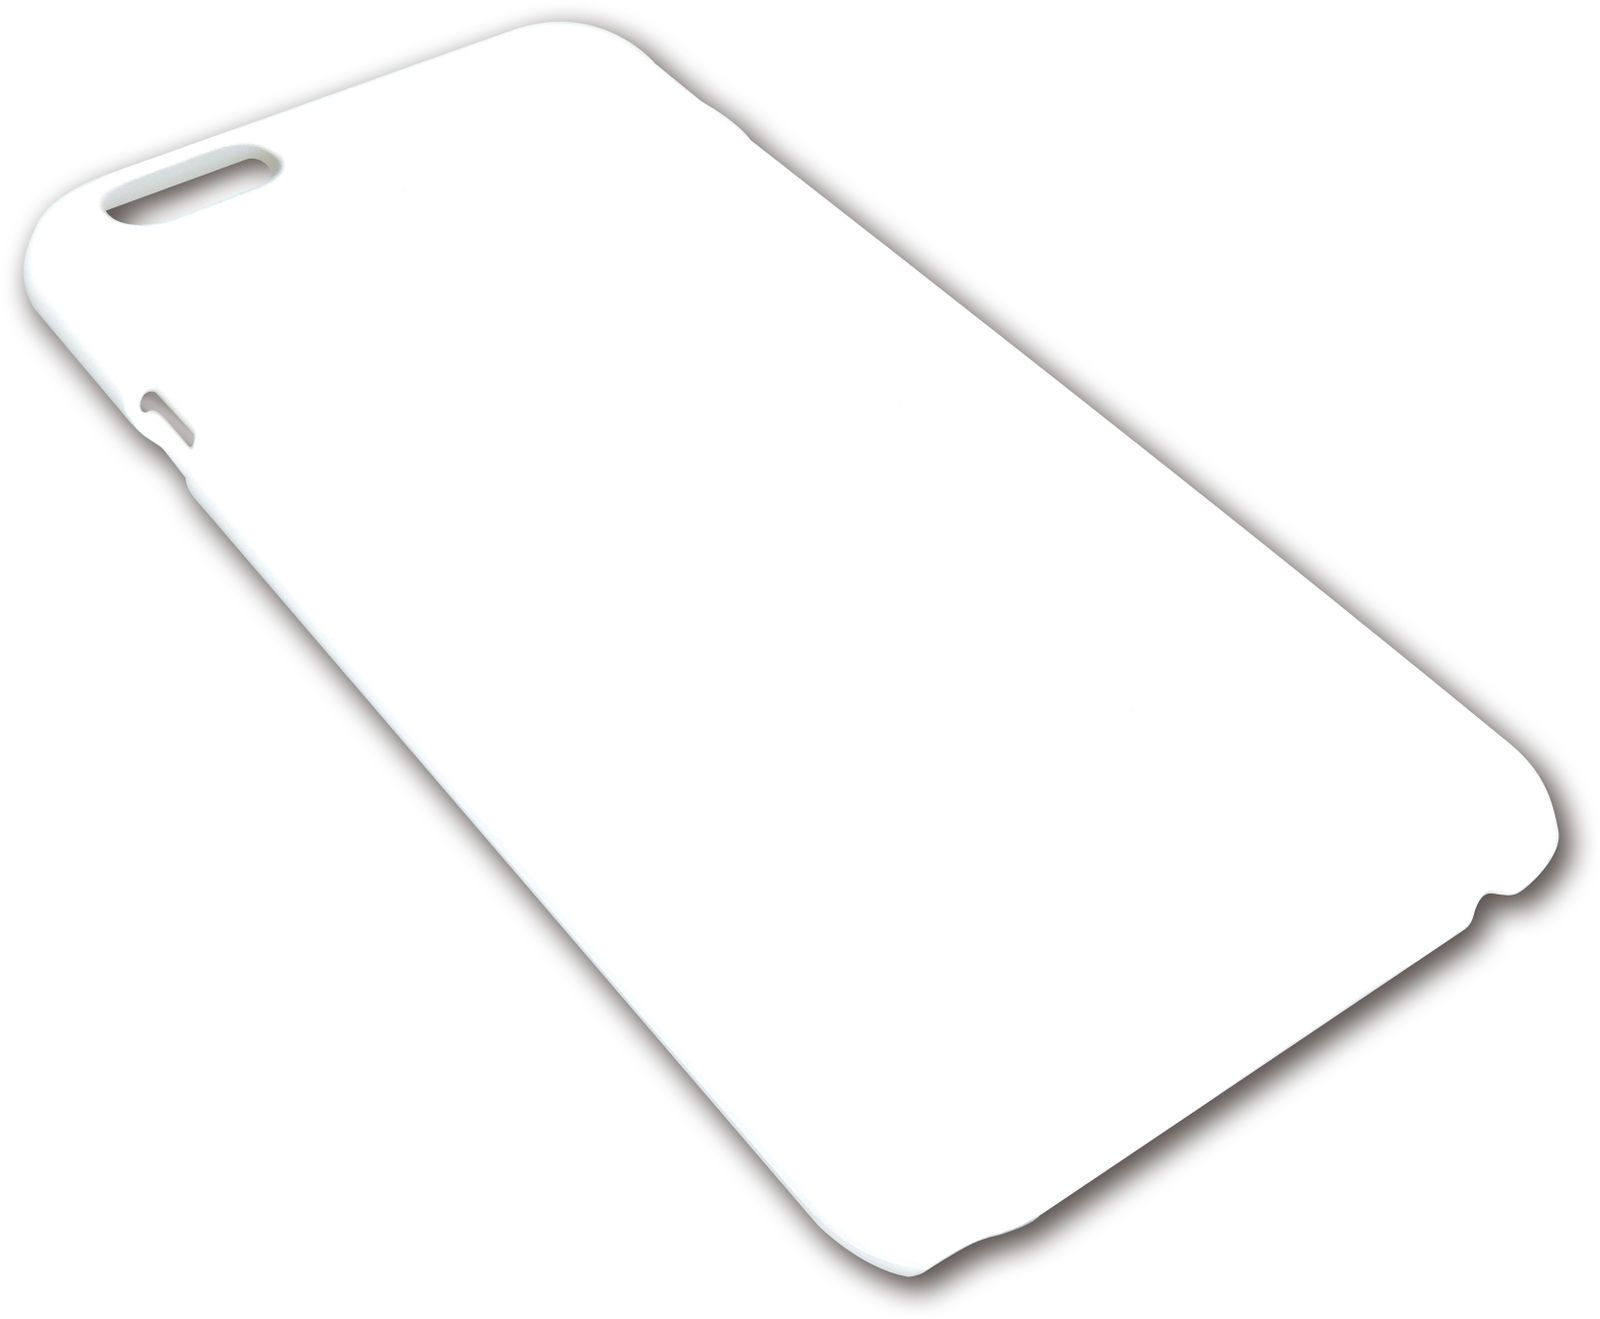 Sandberg Design Cover - Baksidedeksel for mobiltelefon - hard hvit (hard white) - for Apple iPhone 6 (405-33)